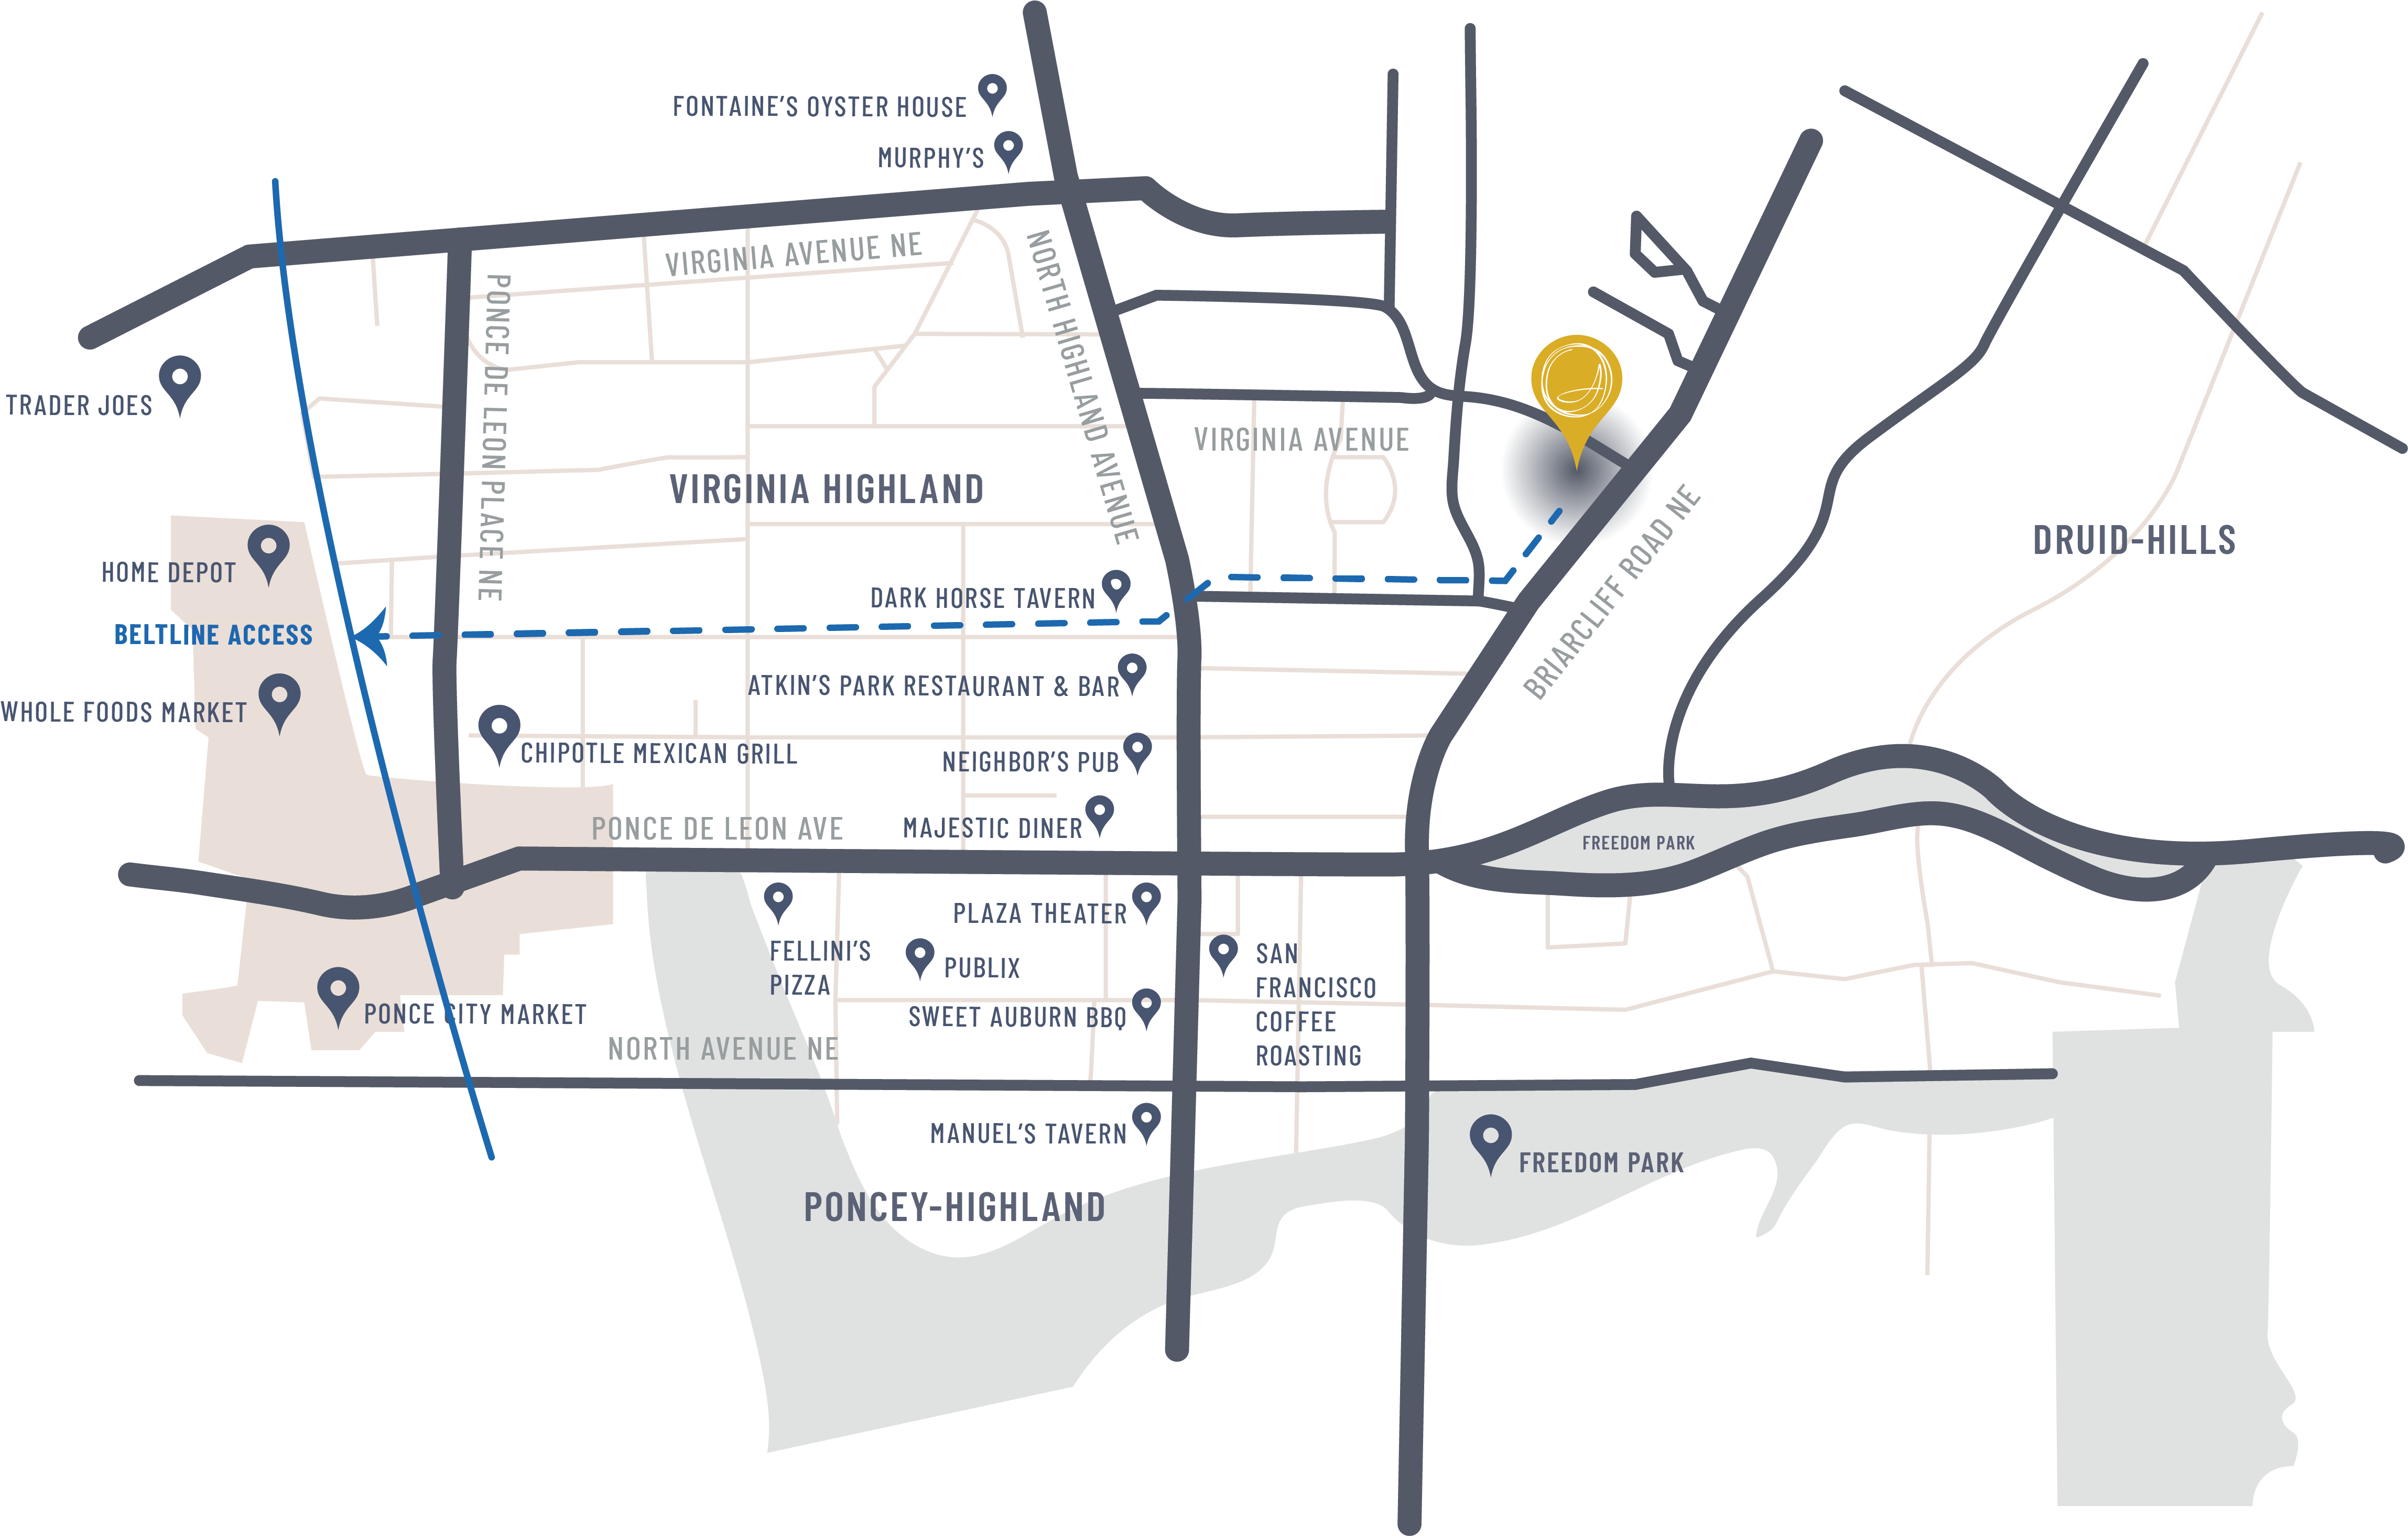 Point of Interest Map